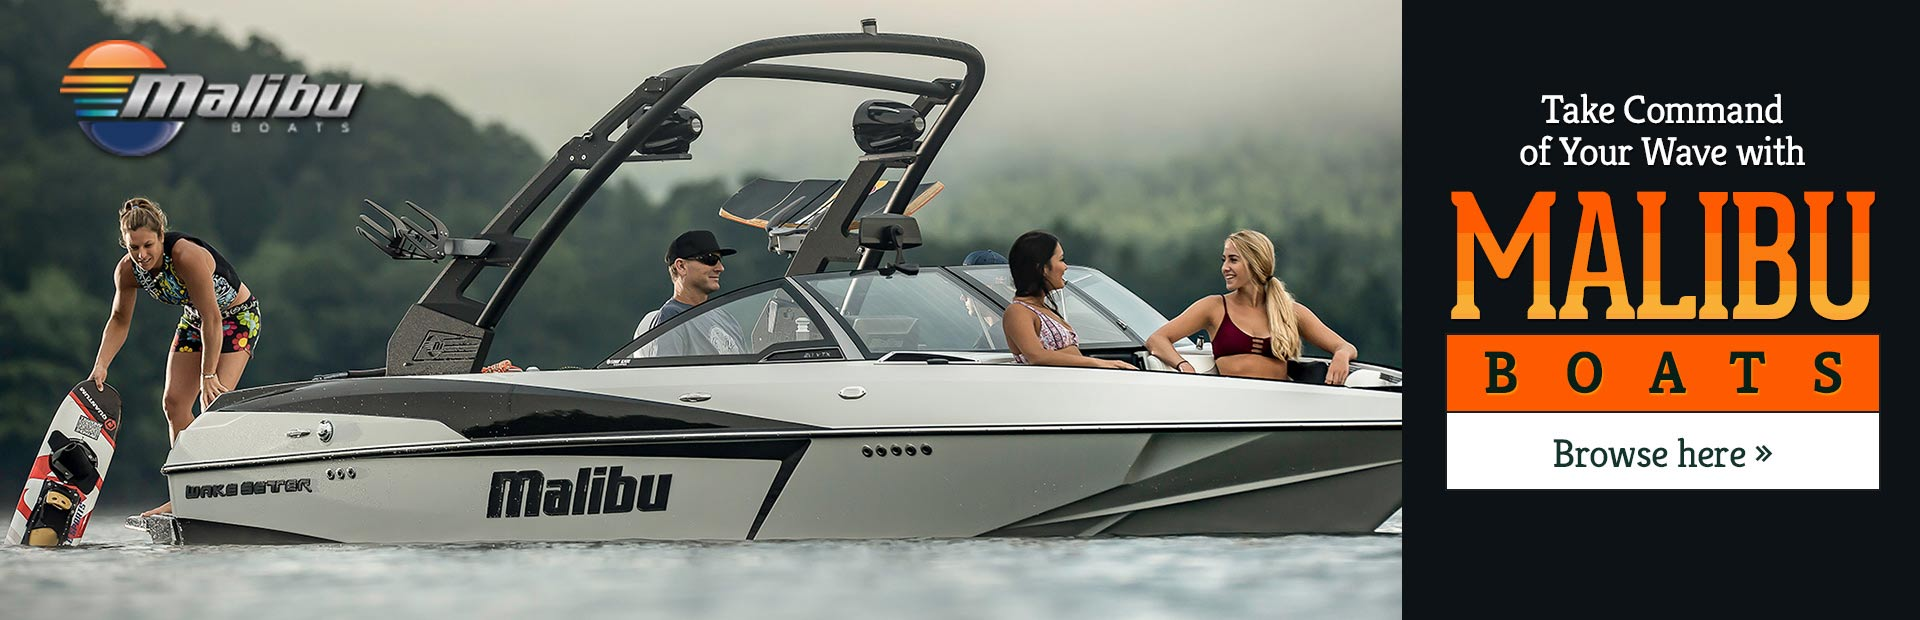 Malibu Boats: Click here to view the models.